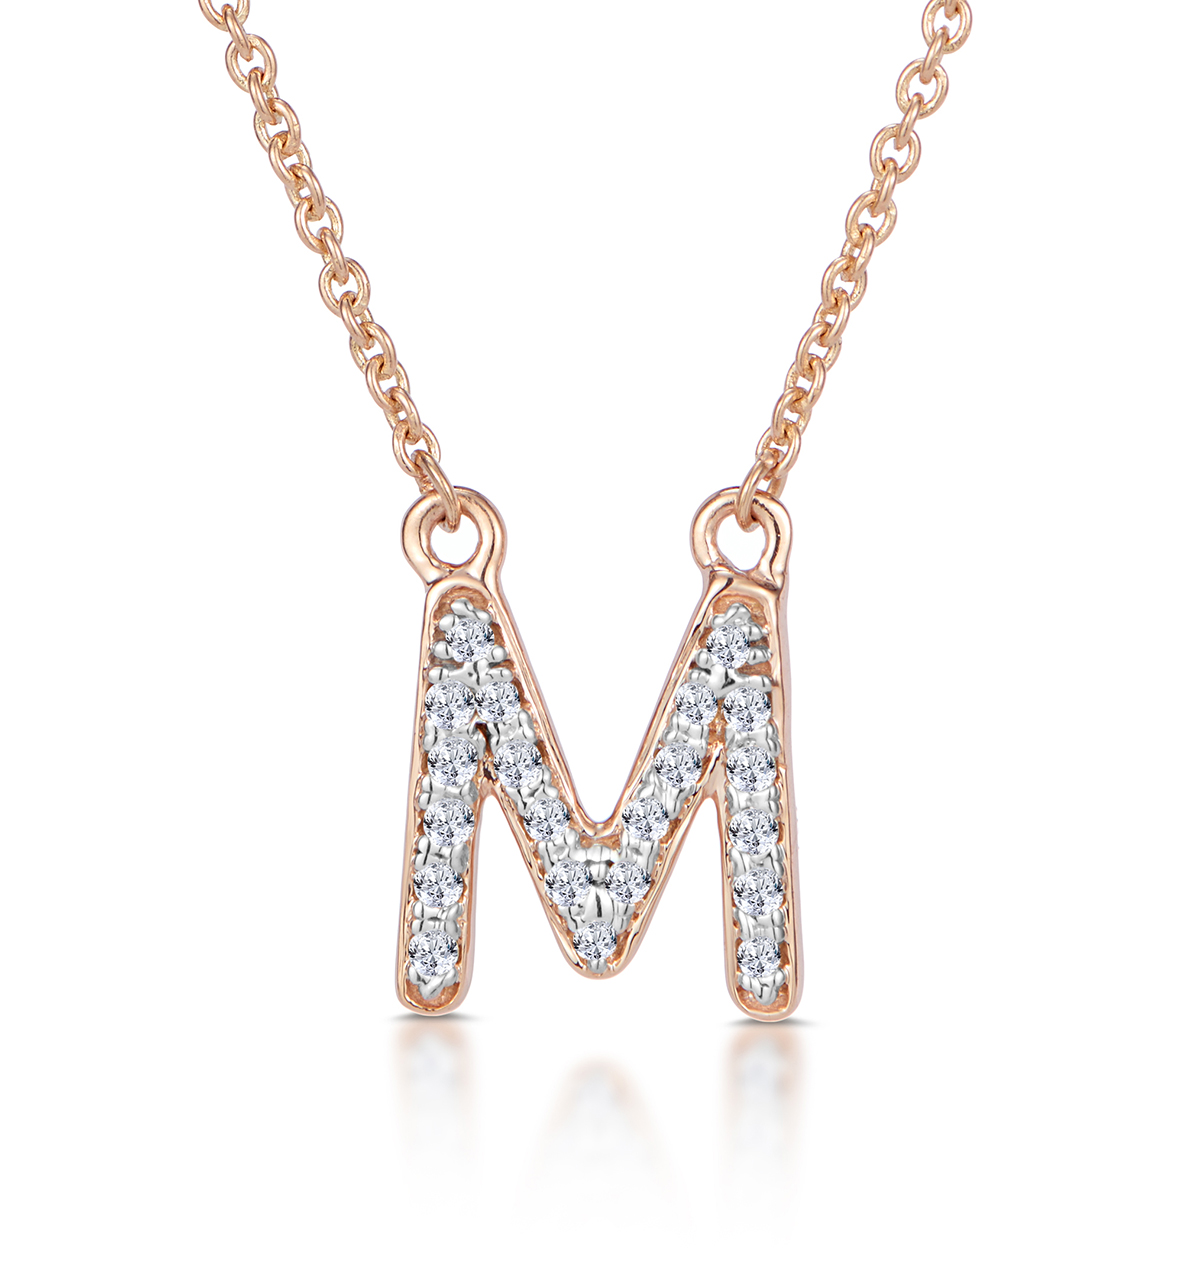 Diamond Encrusted Initial 'M' Necklace Pave Set in 9K Rose Gold